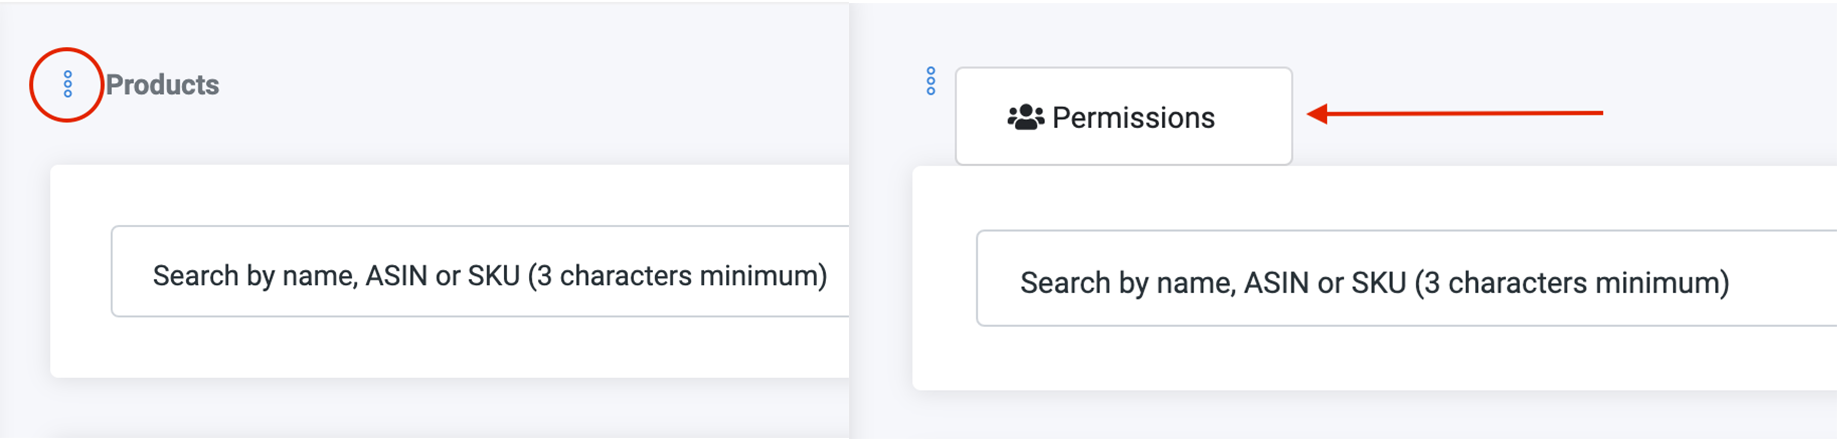 How-to use Products Manager-Permissions